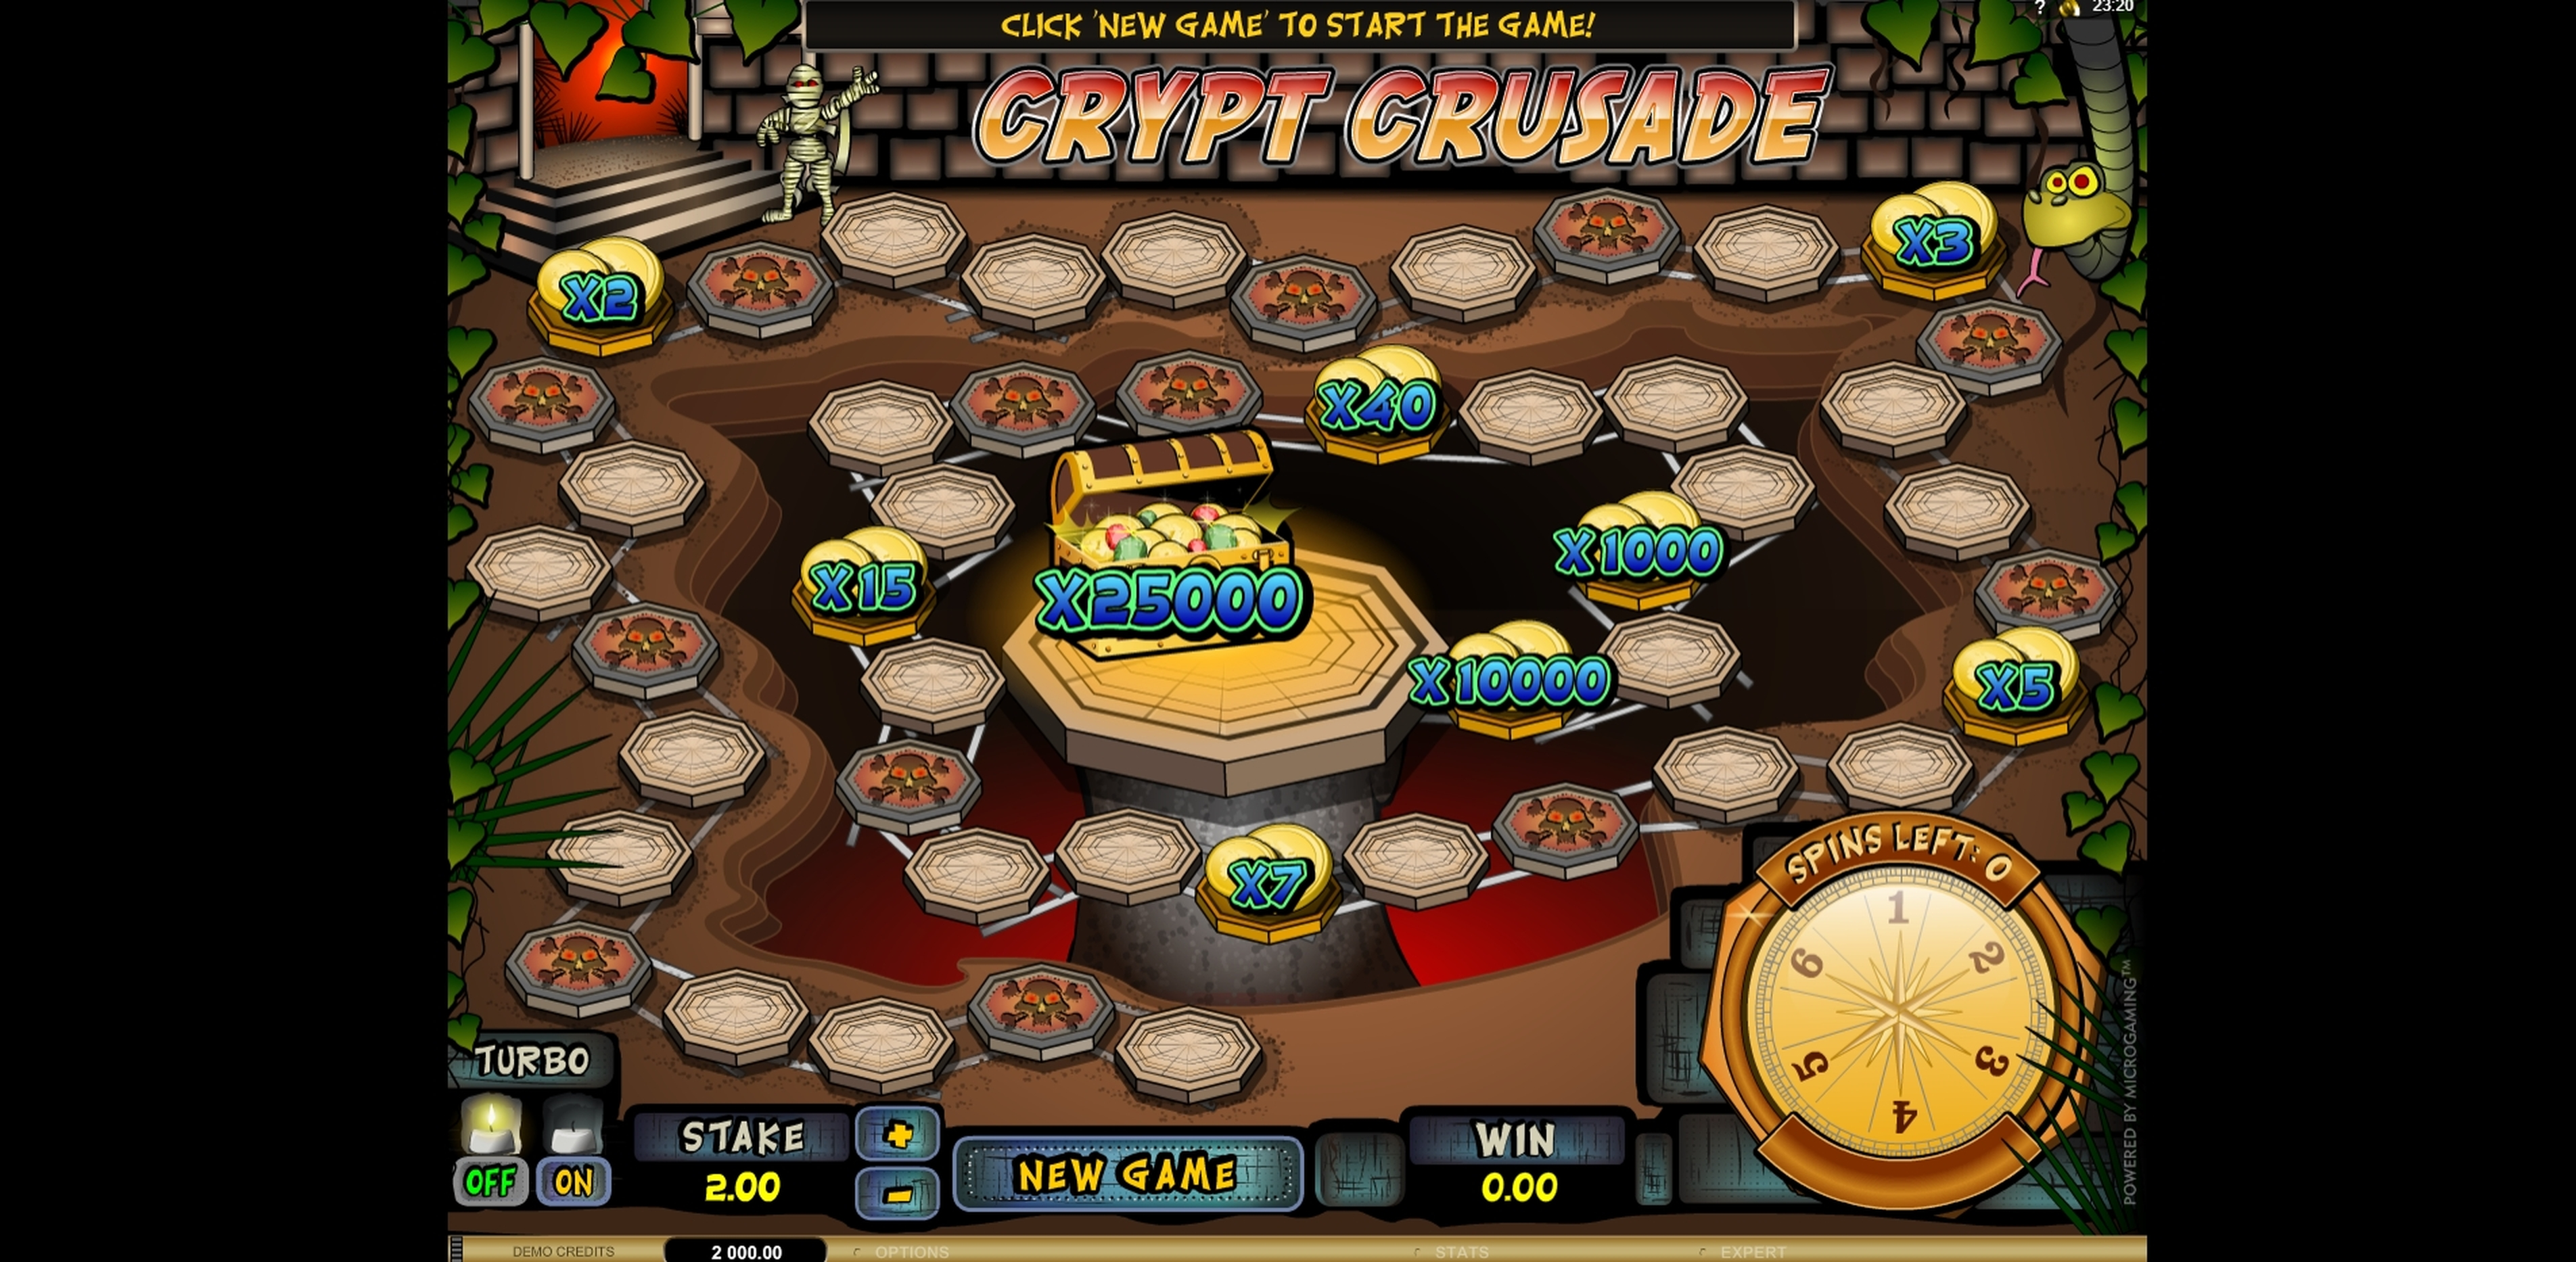 Reels in Crypt Crusade Slot Game by Microgaming